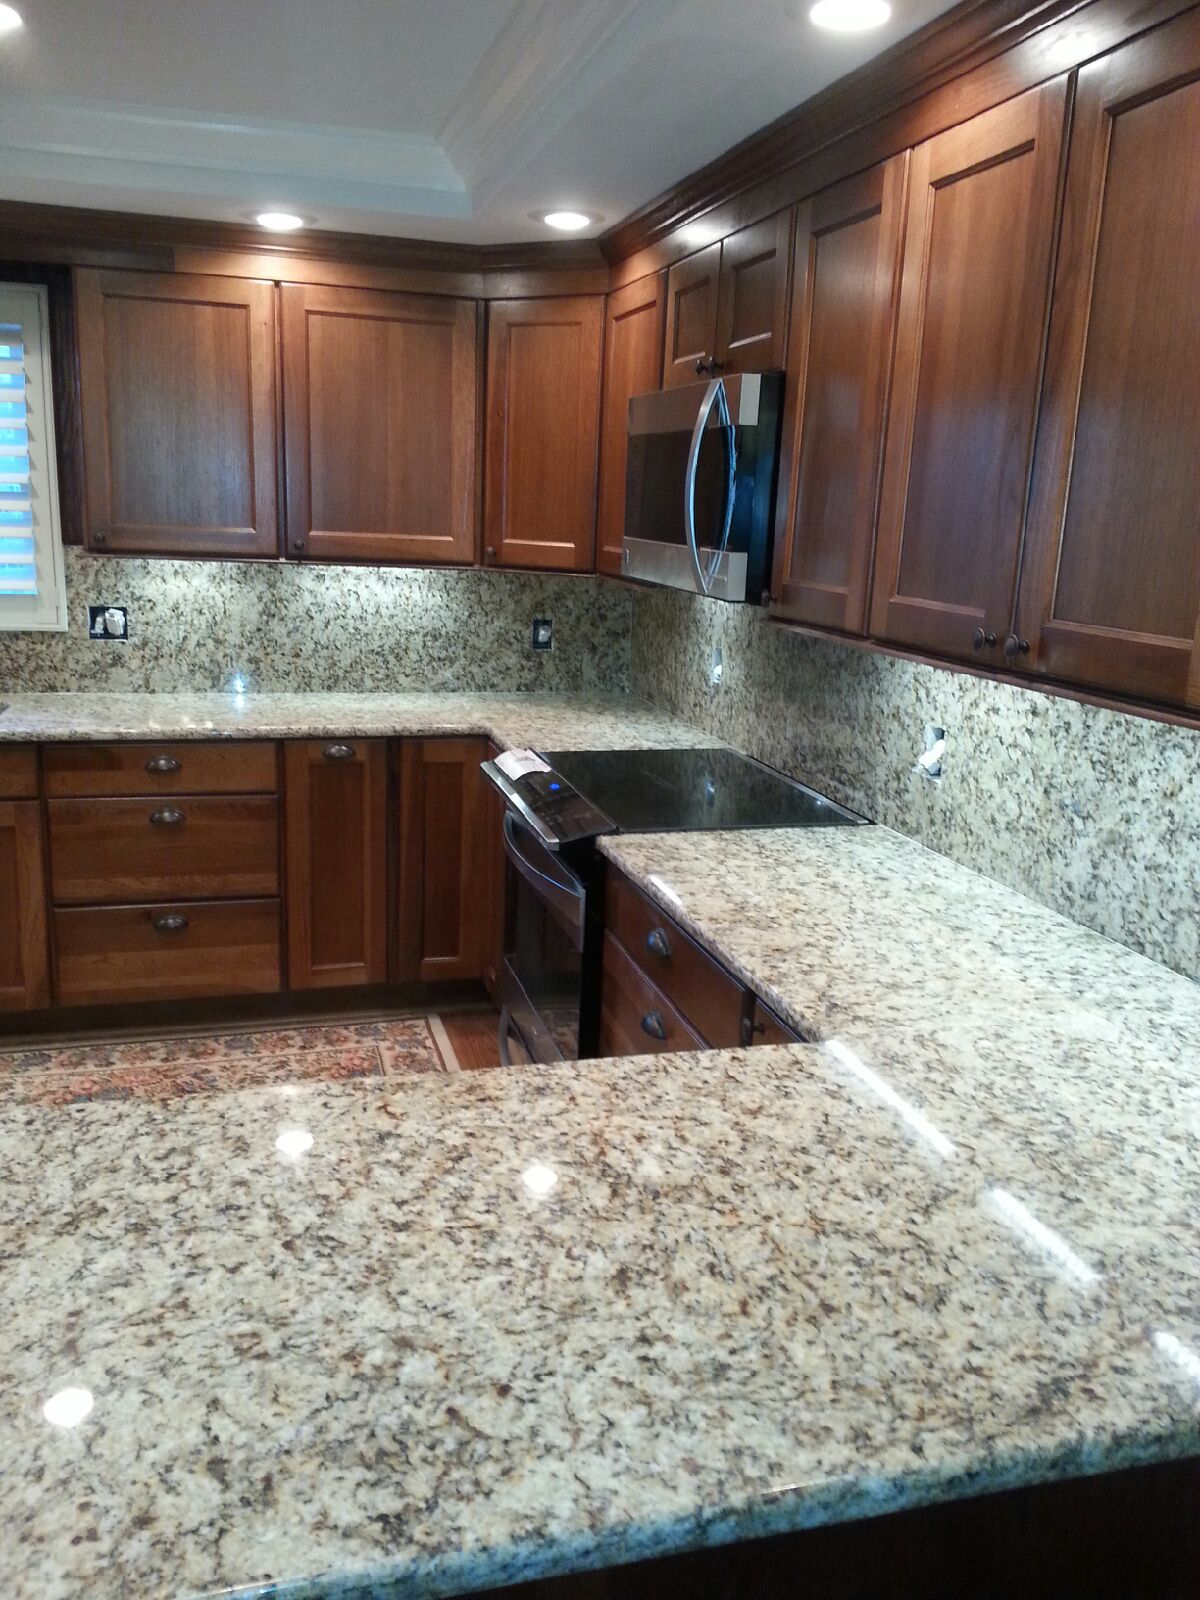 reference kitchen countertop countertops take and luxury how care photos of tips granite